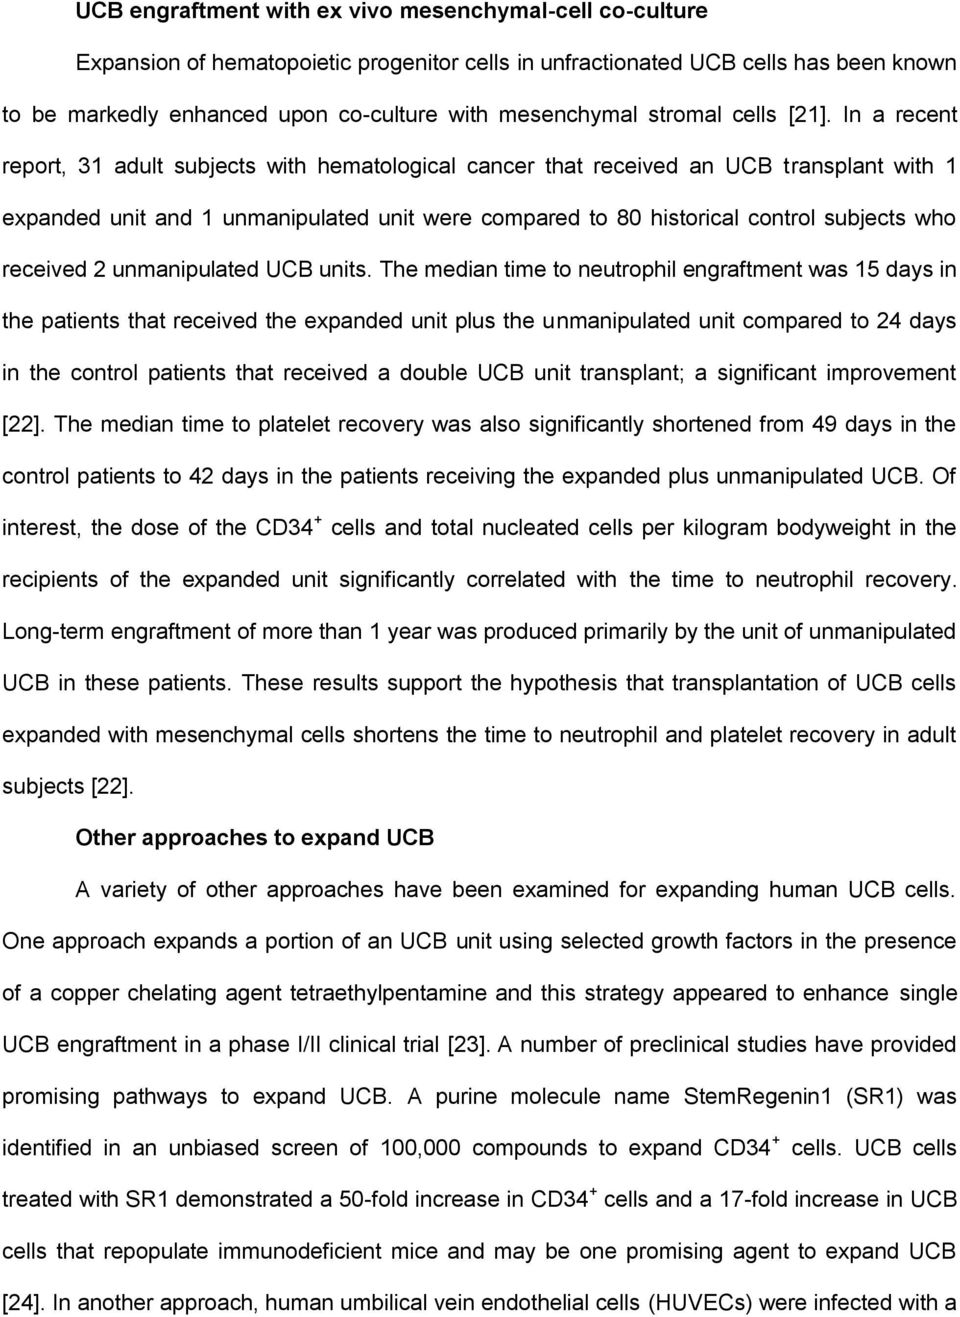 In a recent report, 31 adult subjects with hematological cancer that received an UCB transplant with 1 expanded unit and 1 unmanipulated unit were compared to 80 historical control subjects who